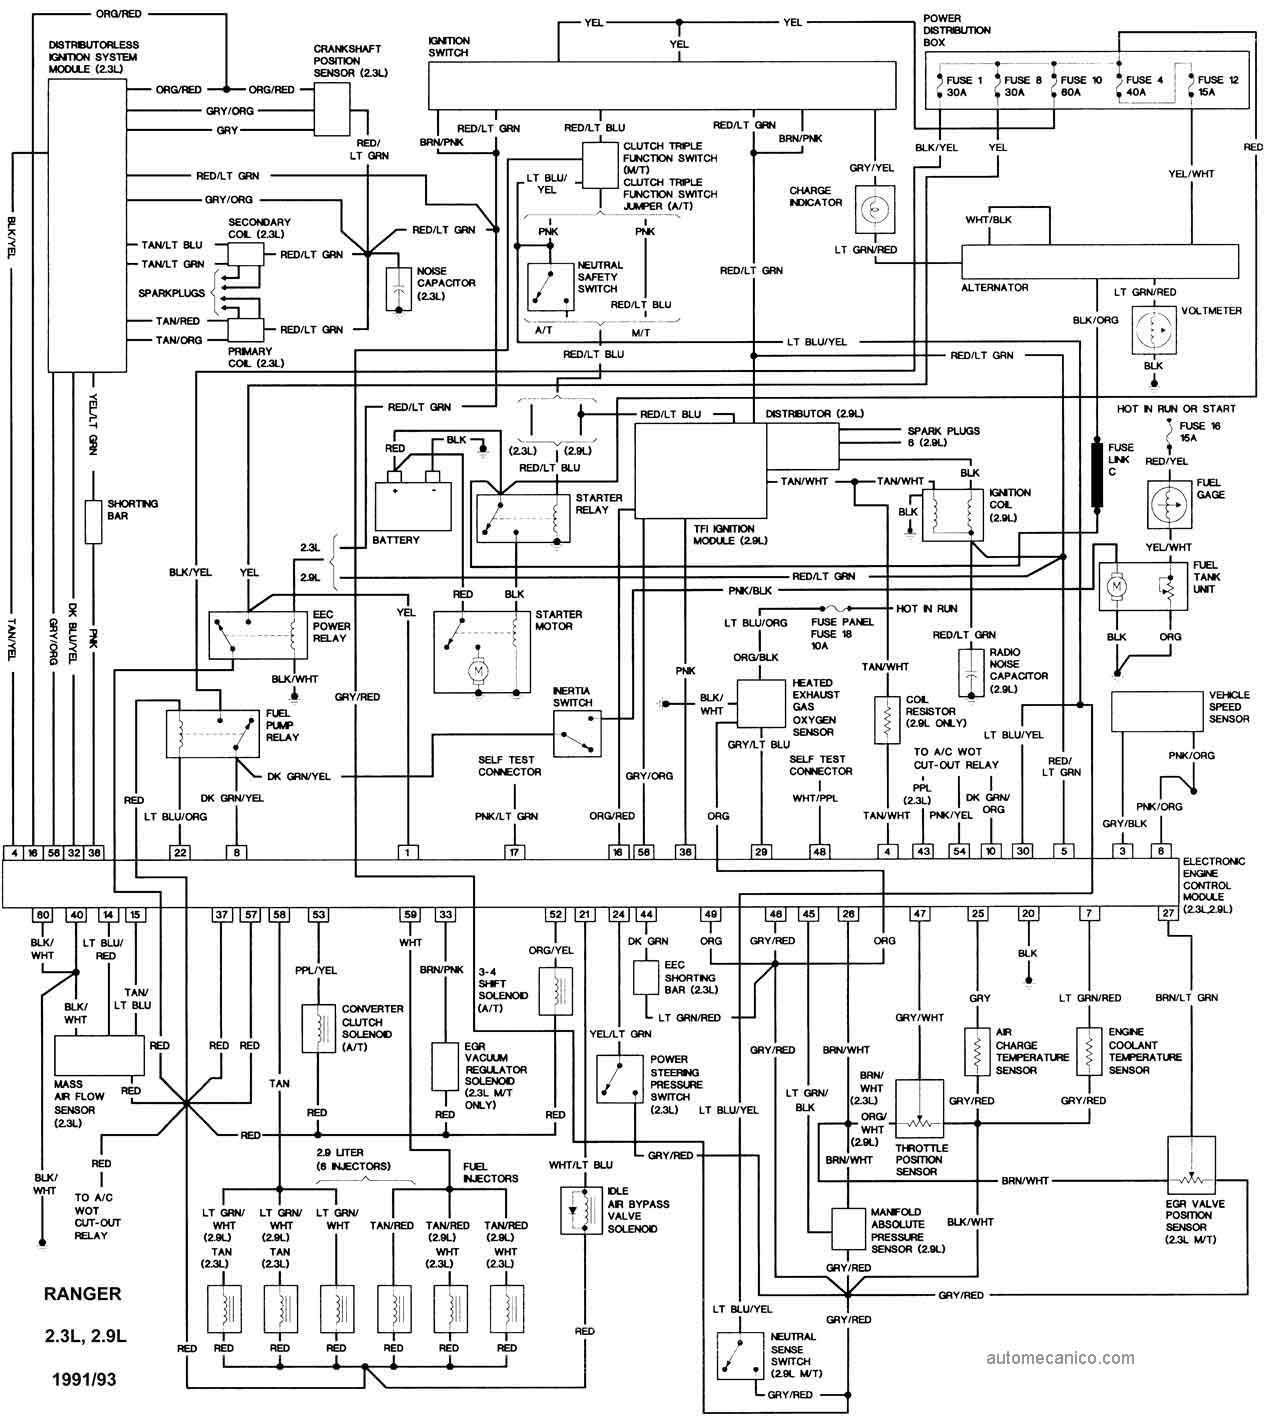 hight resolution of 99 polaris ranger wiring diagram ford ranger light wiring diagram wiring diagram databasetags 1989 ford ranger wiring diagram ford ranger ignition